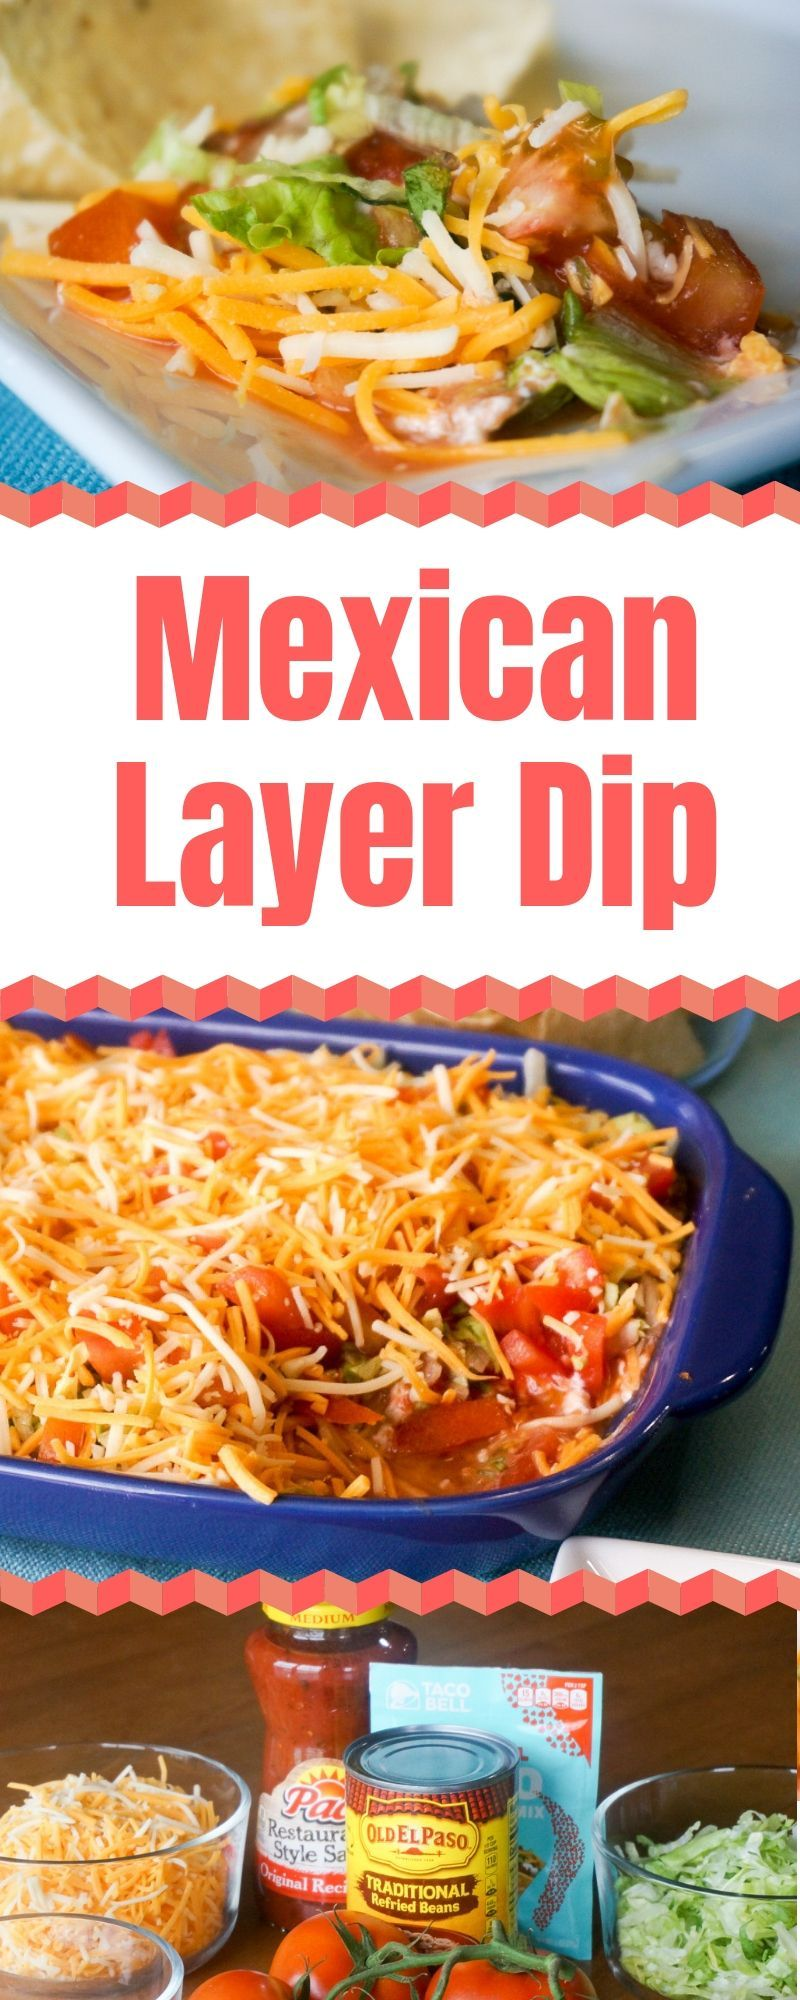 Mexican Layer Dip - A Fresh Take On 7-Layer Dip | Grace Like Rain Blog #7layerdip Mexican Layer Dip is easily customized to the ingredients you and your family like. You can add white onions, green onions, guacamole, or black olives to name a few. Spice it up by using hot salsa and/or hot taco seasoning. The sky is the limit! | Mexican 7-Layer Dip | What is in 7 Layer Dip | Mexican Layered Dip | 9 Layer Dip | Mexican Appetizer Ideas | #MexicanDip #ChipsAndDip #Appetizers #MexicanFood #MexicanRec #7layerdip